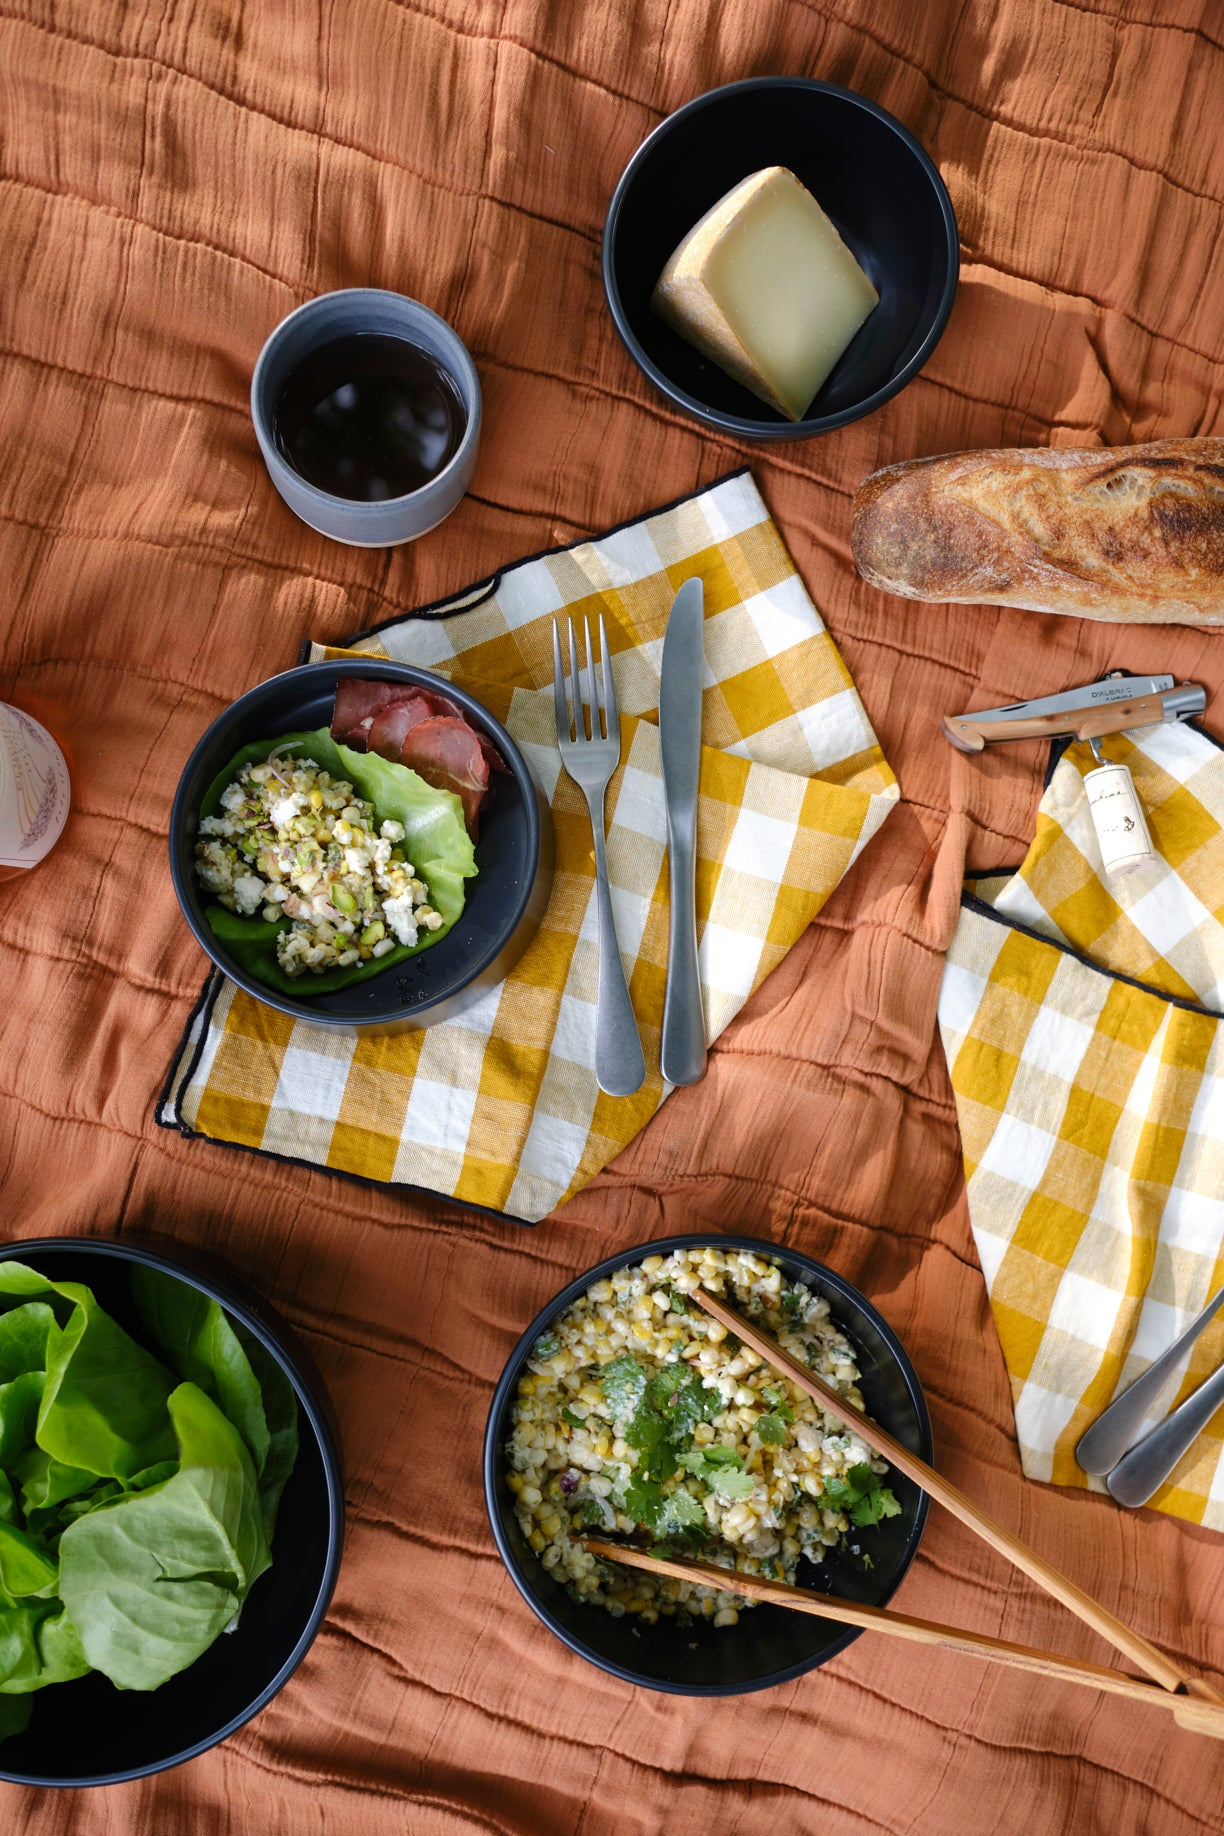 Summer Picnic inspiration